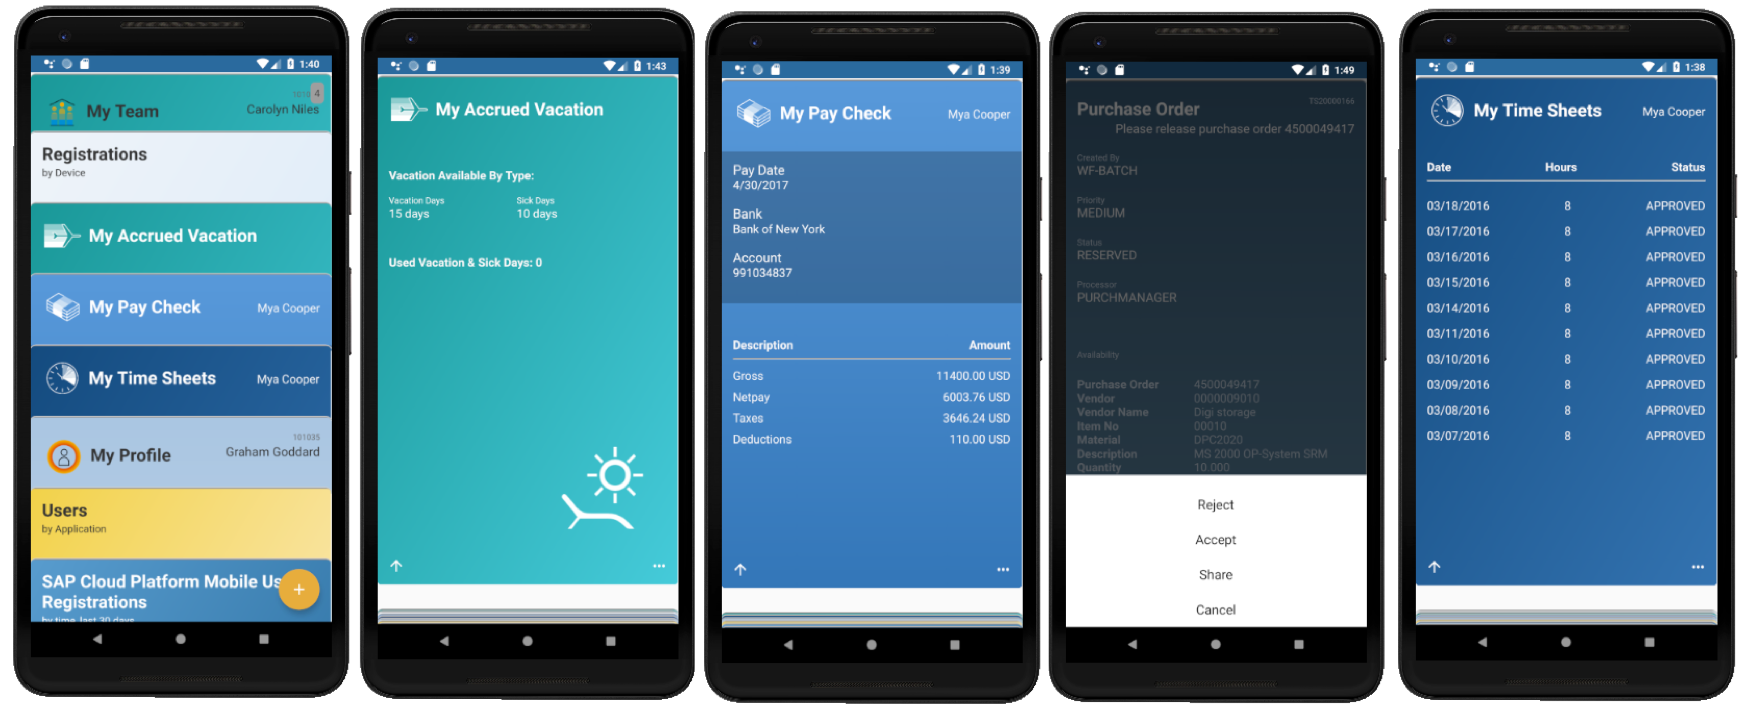 SAP Mobile Cards expands client support to Android | SAP Blogs